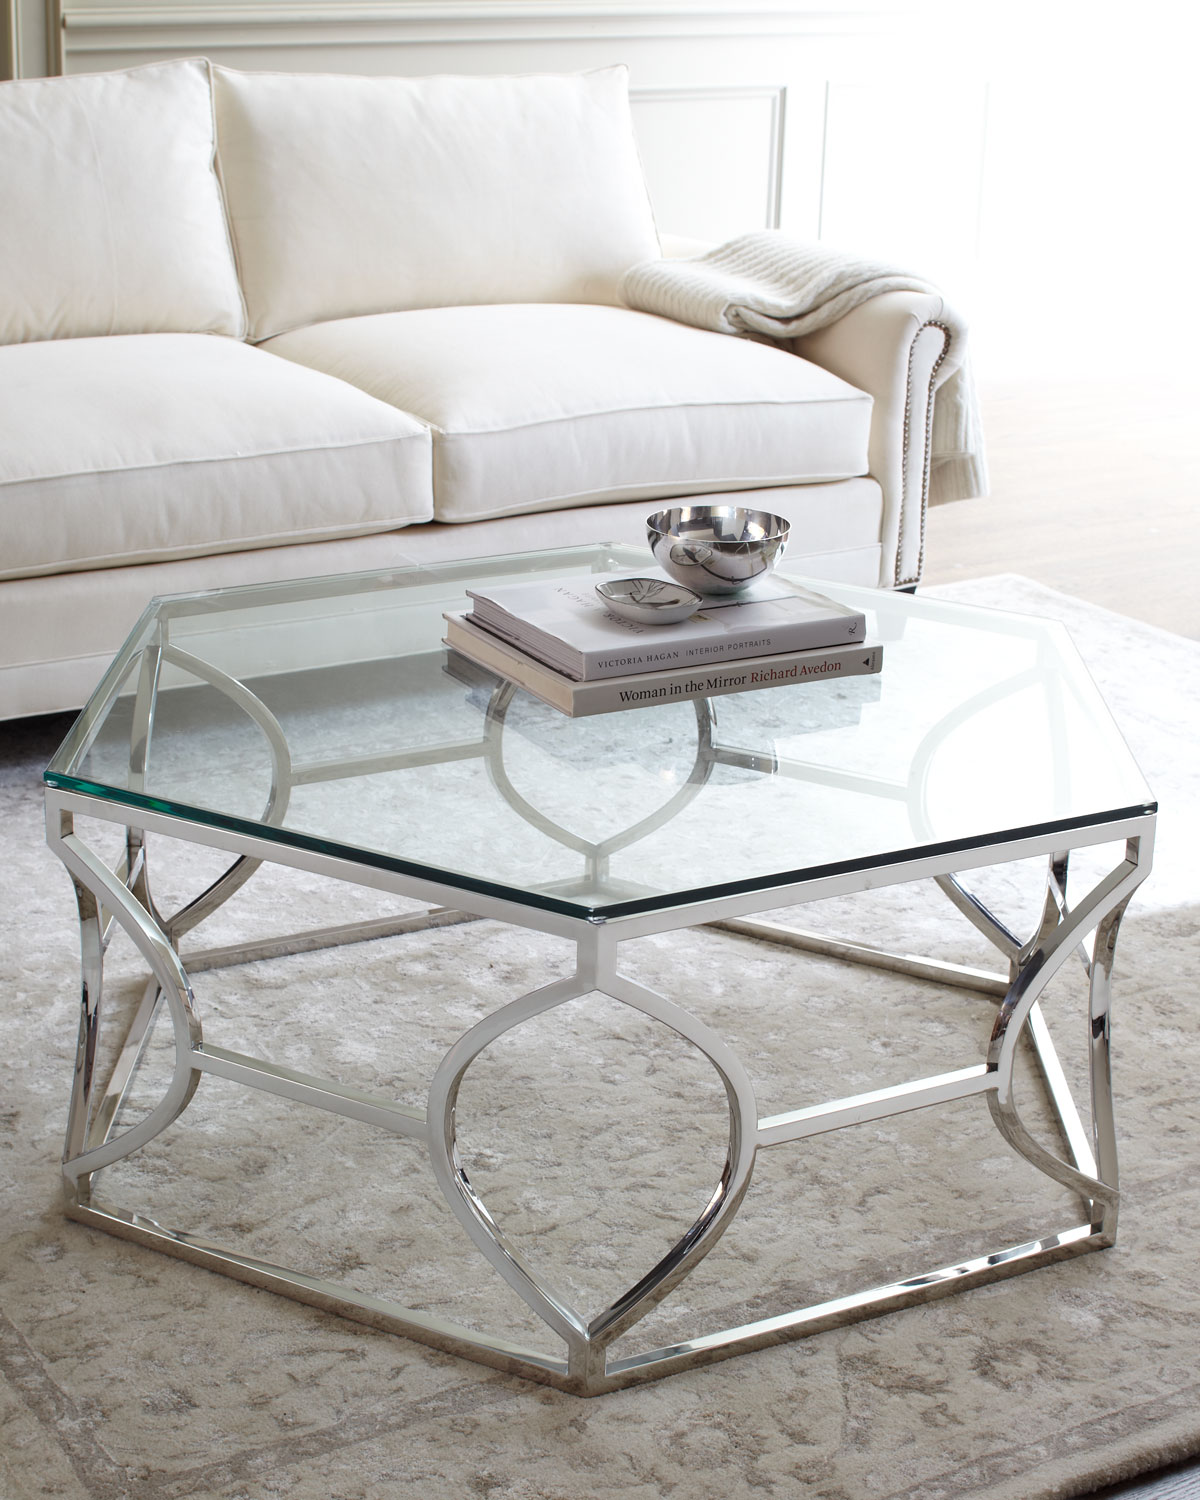 Geometric-coffee-table-is-a-must-have-item-in-a-contemporary-living-space